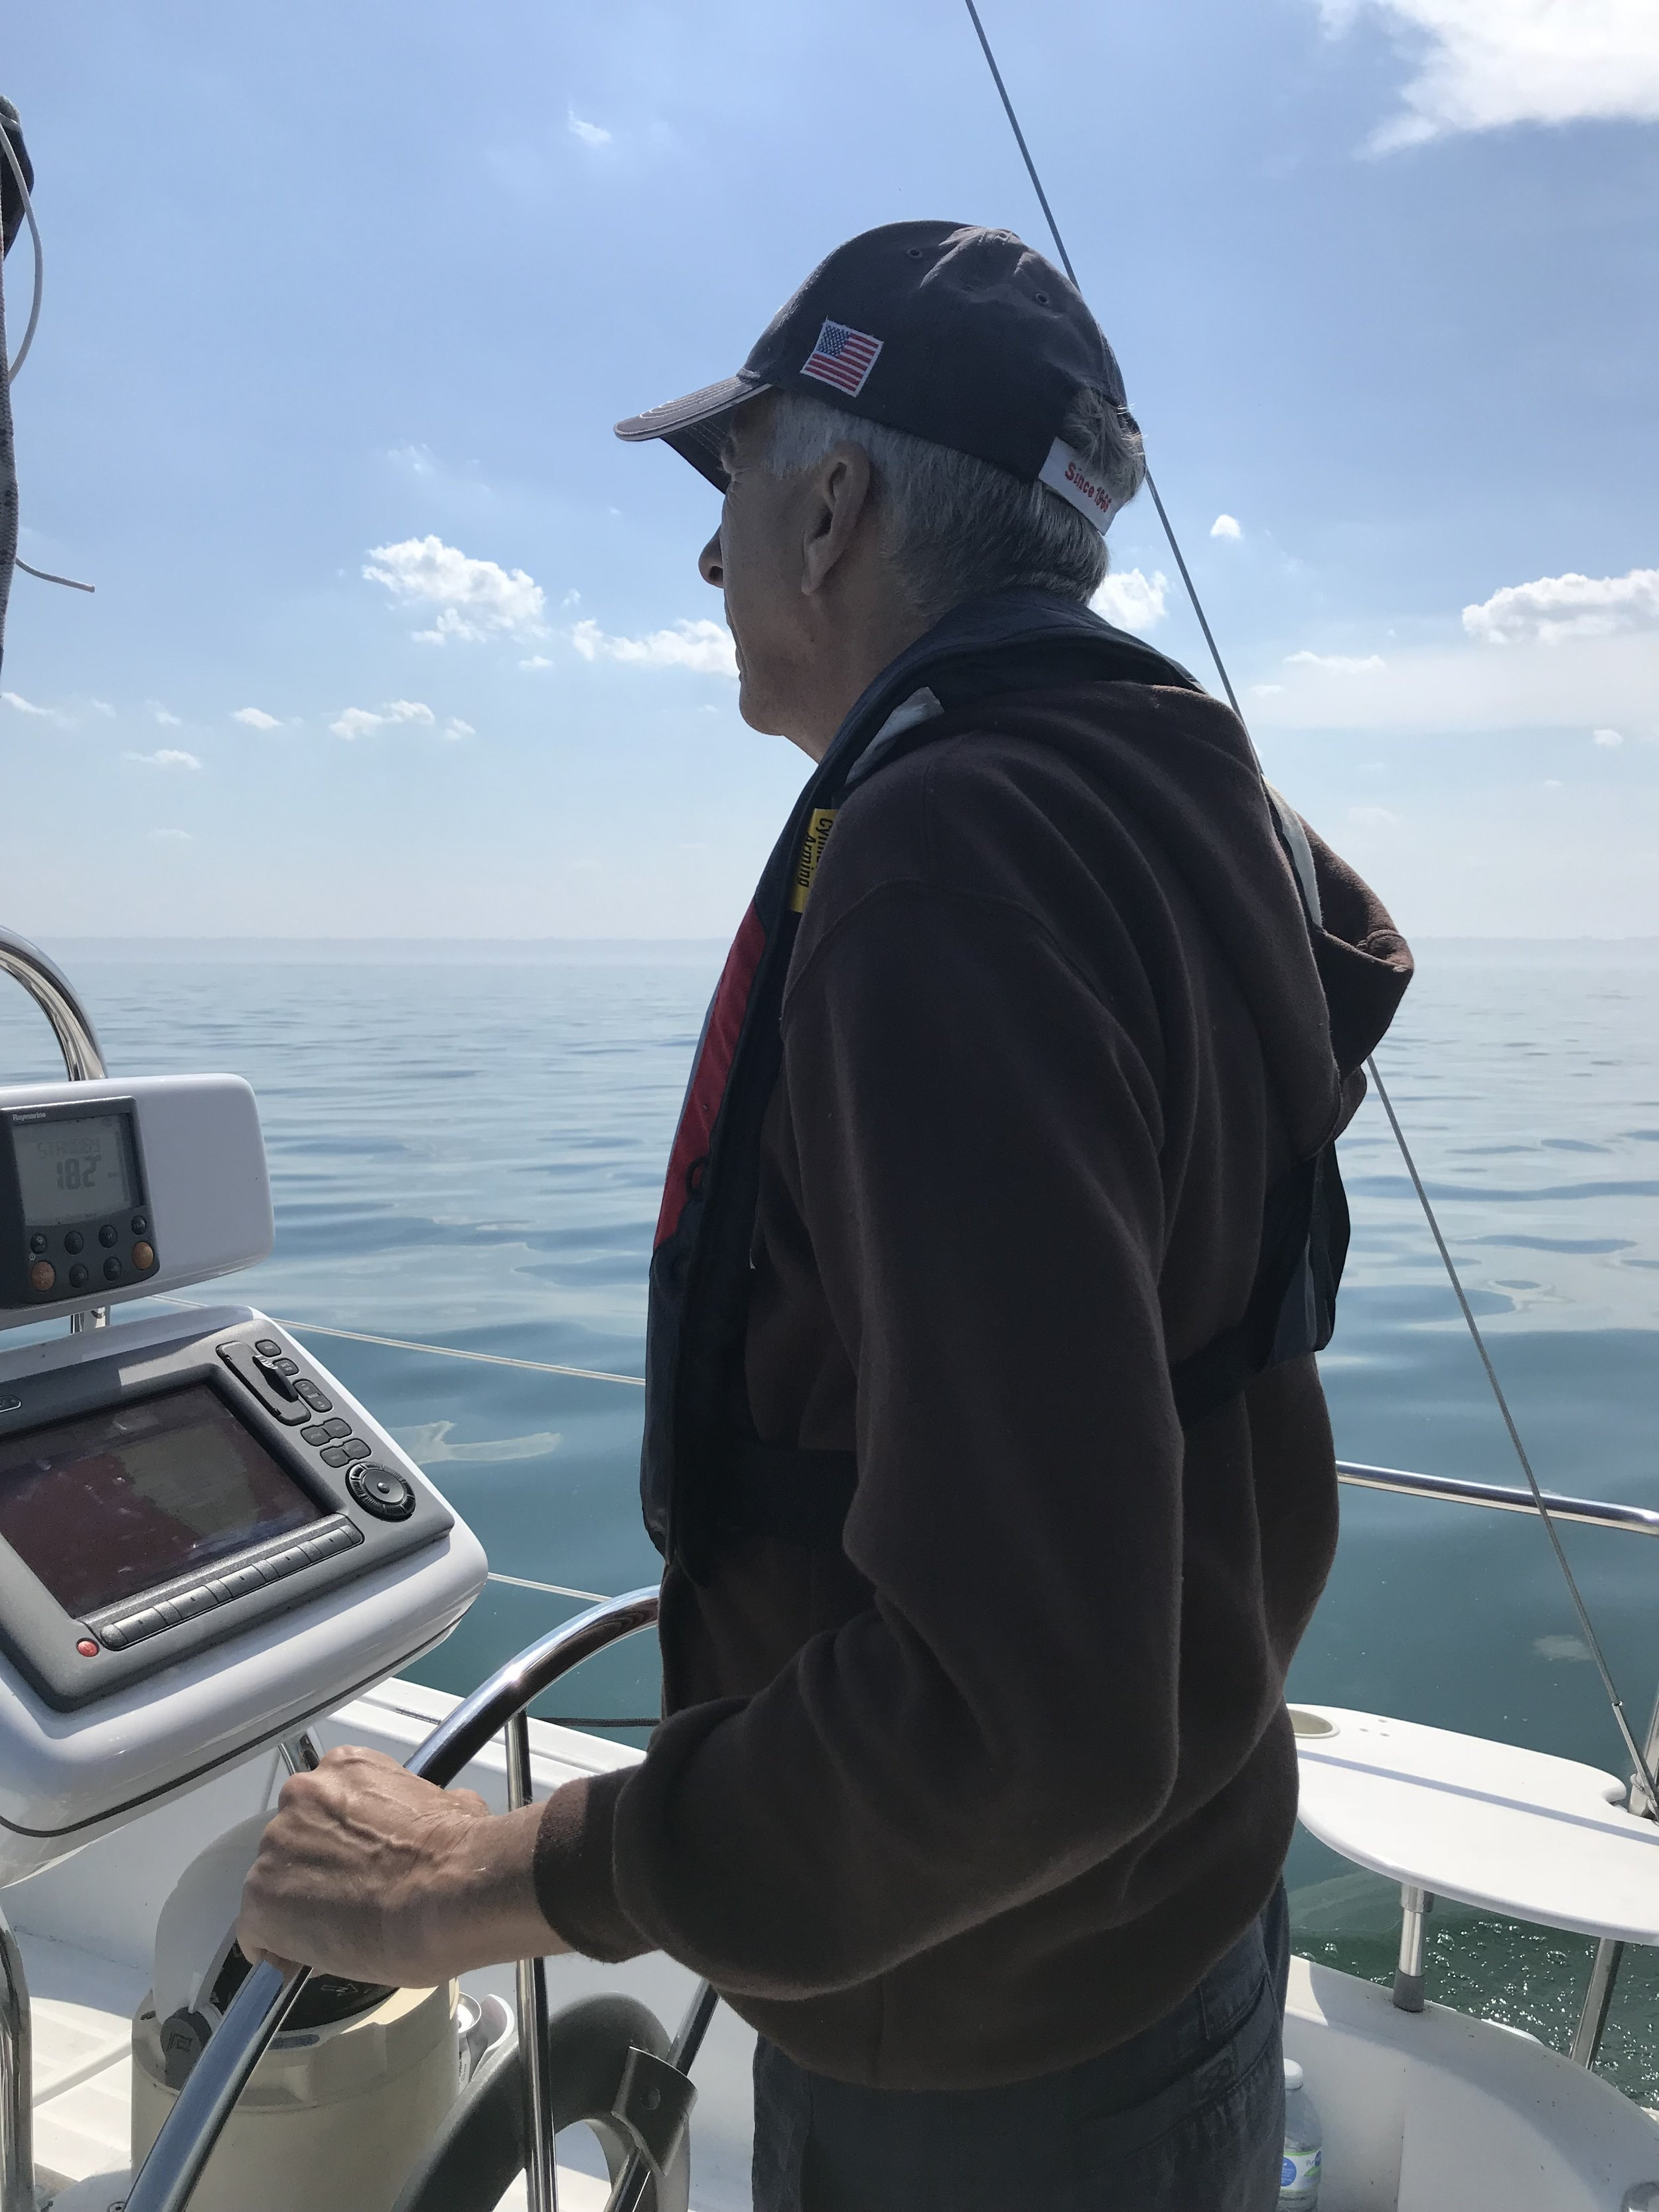 The author's father, Admiral Jim, at the helm of Knot Write.